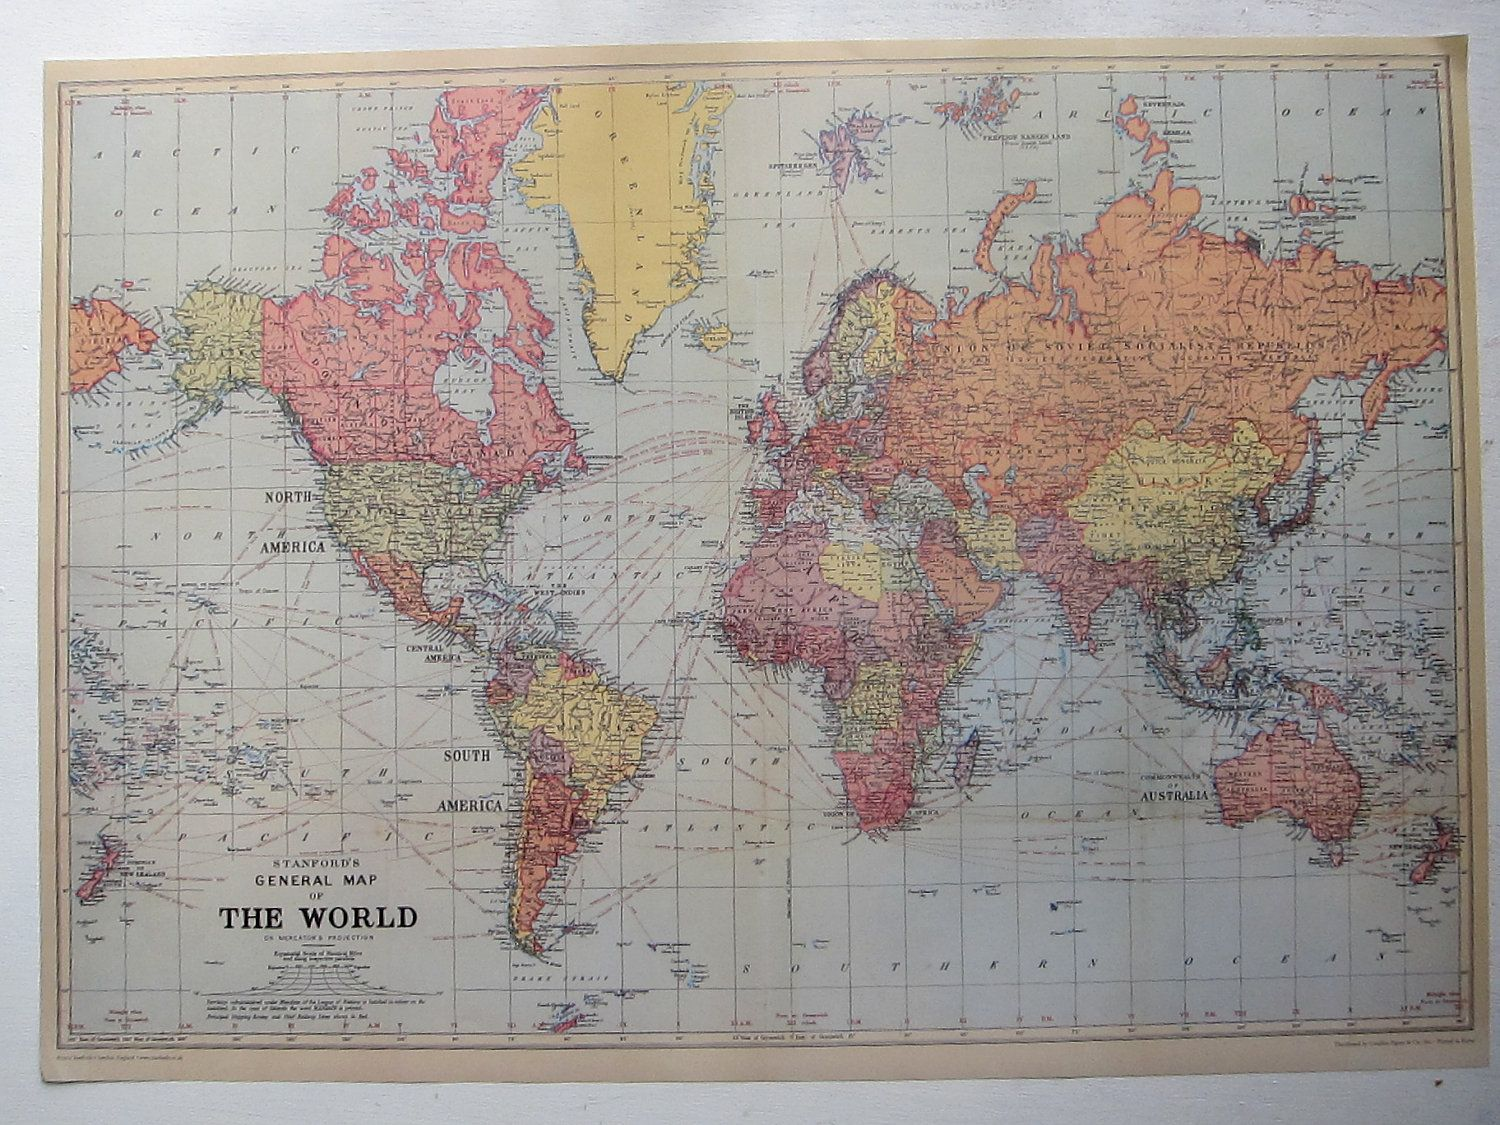 Diy travel map kit world map no 1 1800 via etsy house diy travel map kit world map no 1 1800 via etsy gumiabroncs Image collections